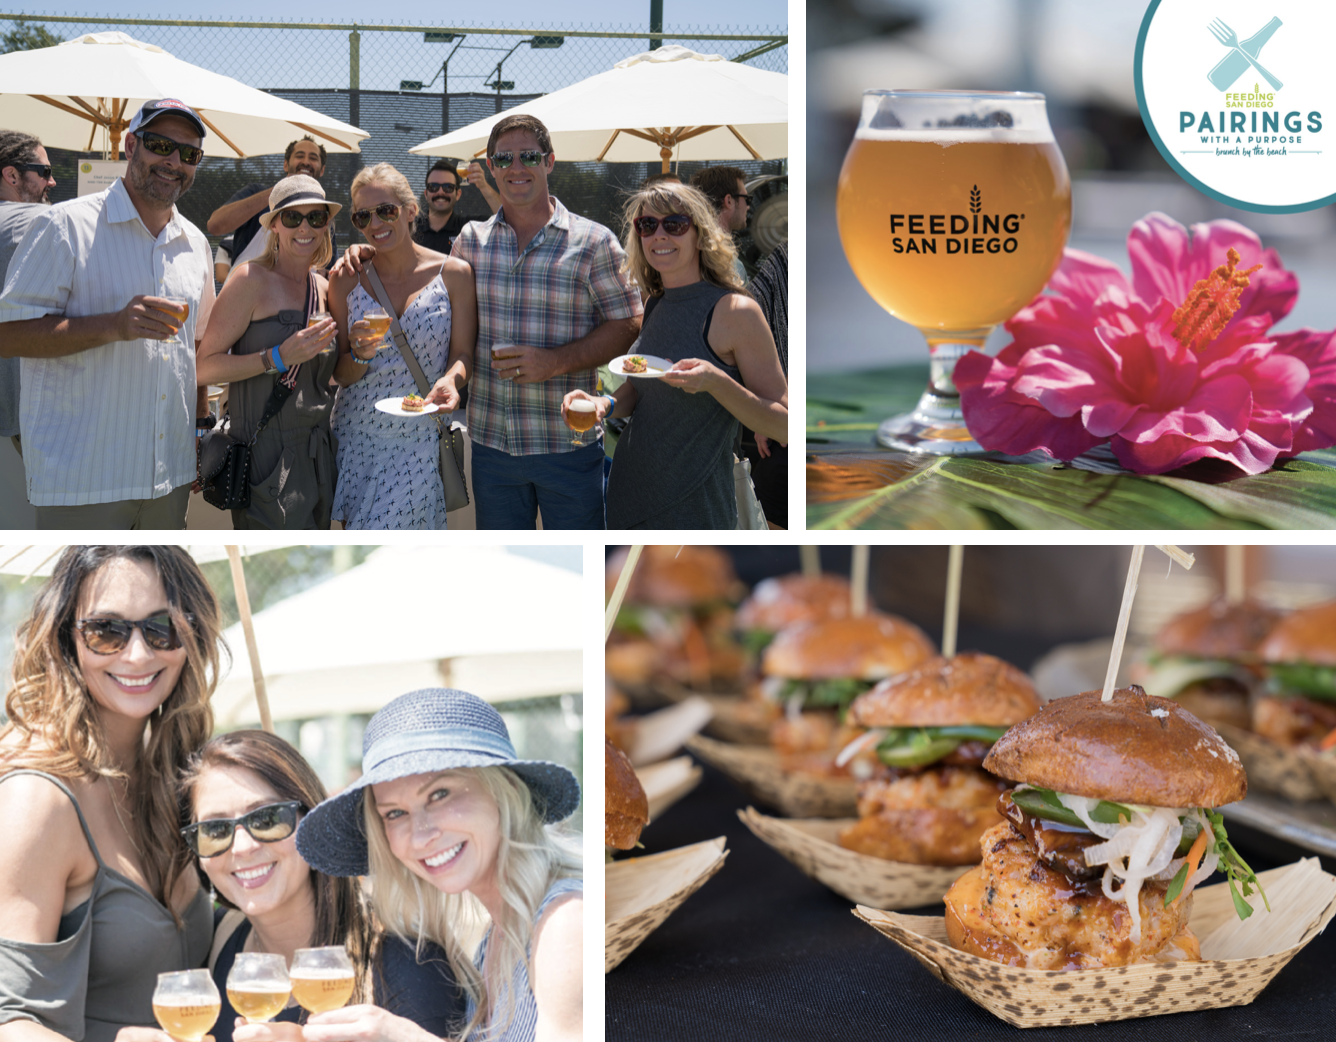 Enter to win tickets to Feeding San Diego's Pairings With A Purpose - April 13!